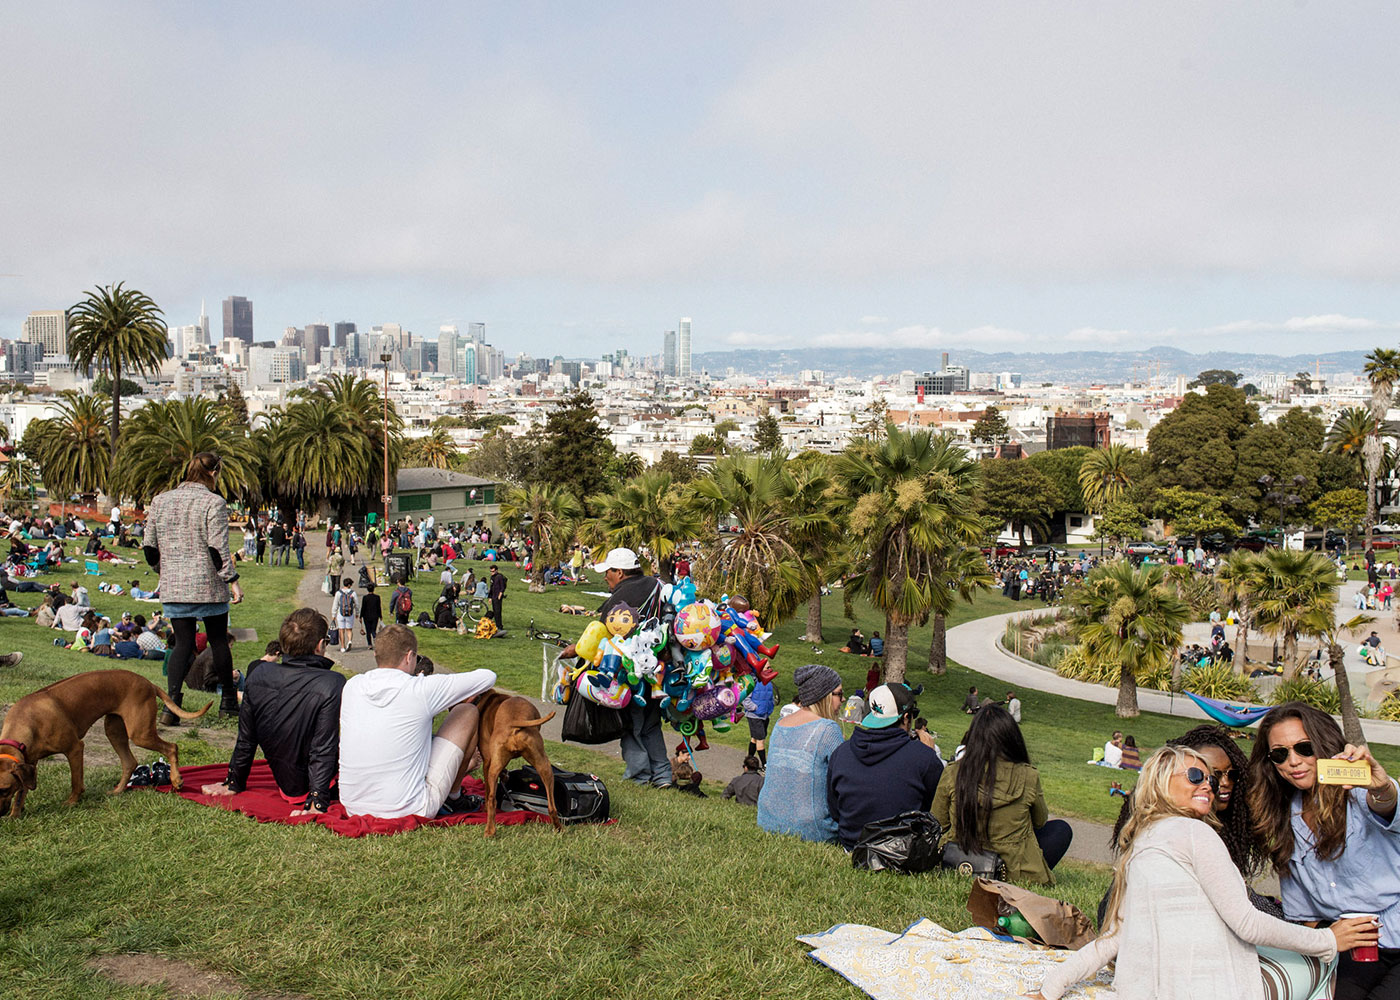 San Francisco, CA, USA. People relaxing at Mission Dolores park.